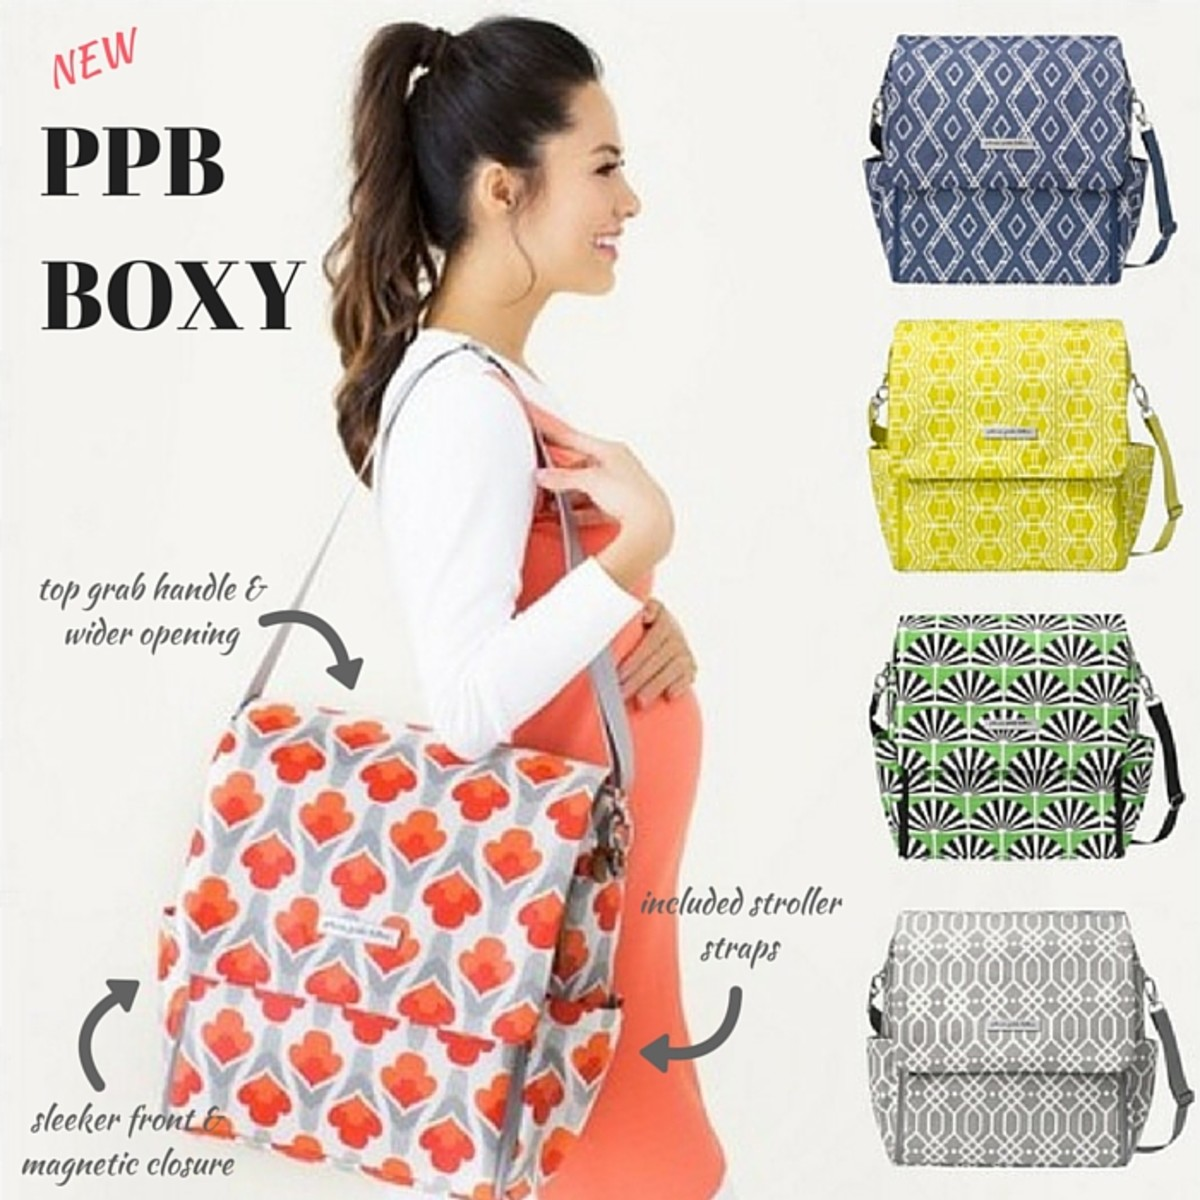 New Petunia Pickle Bottom Boxy Backpack